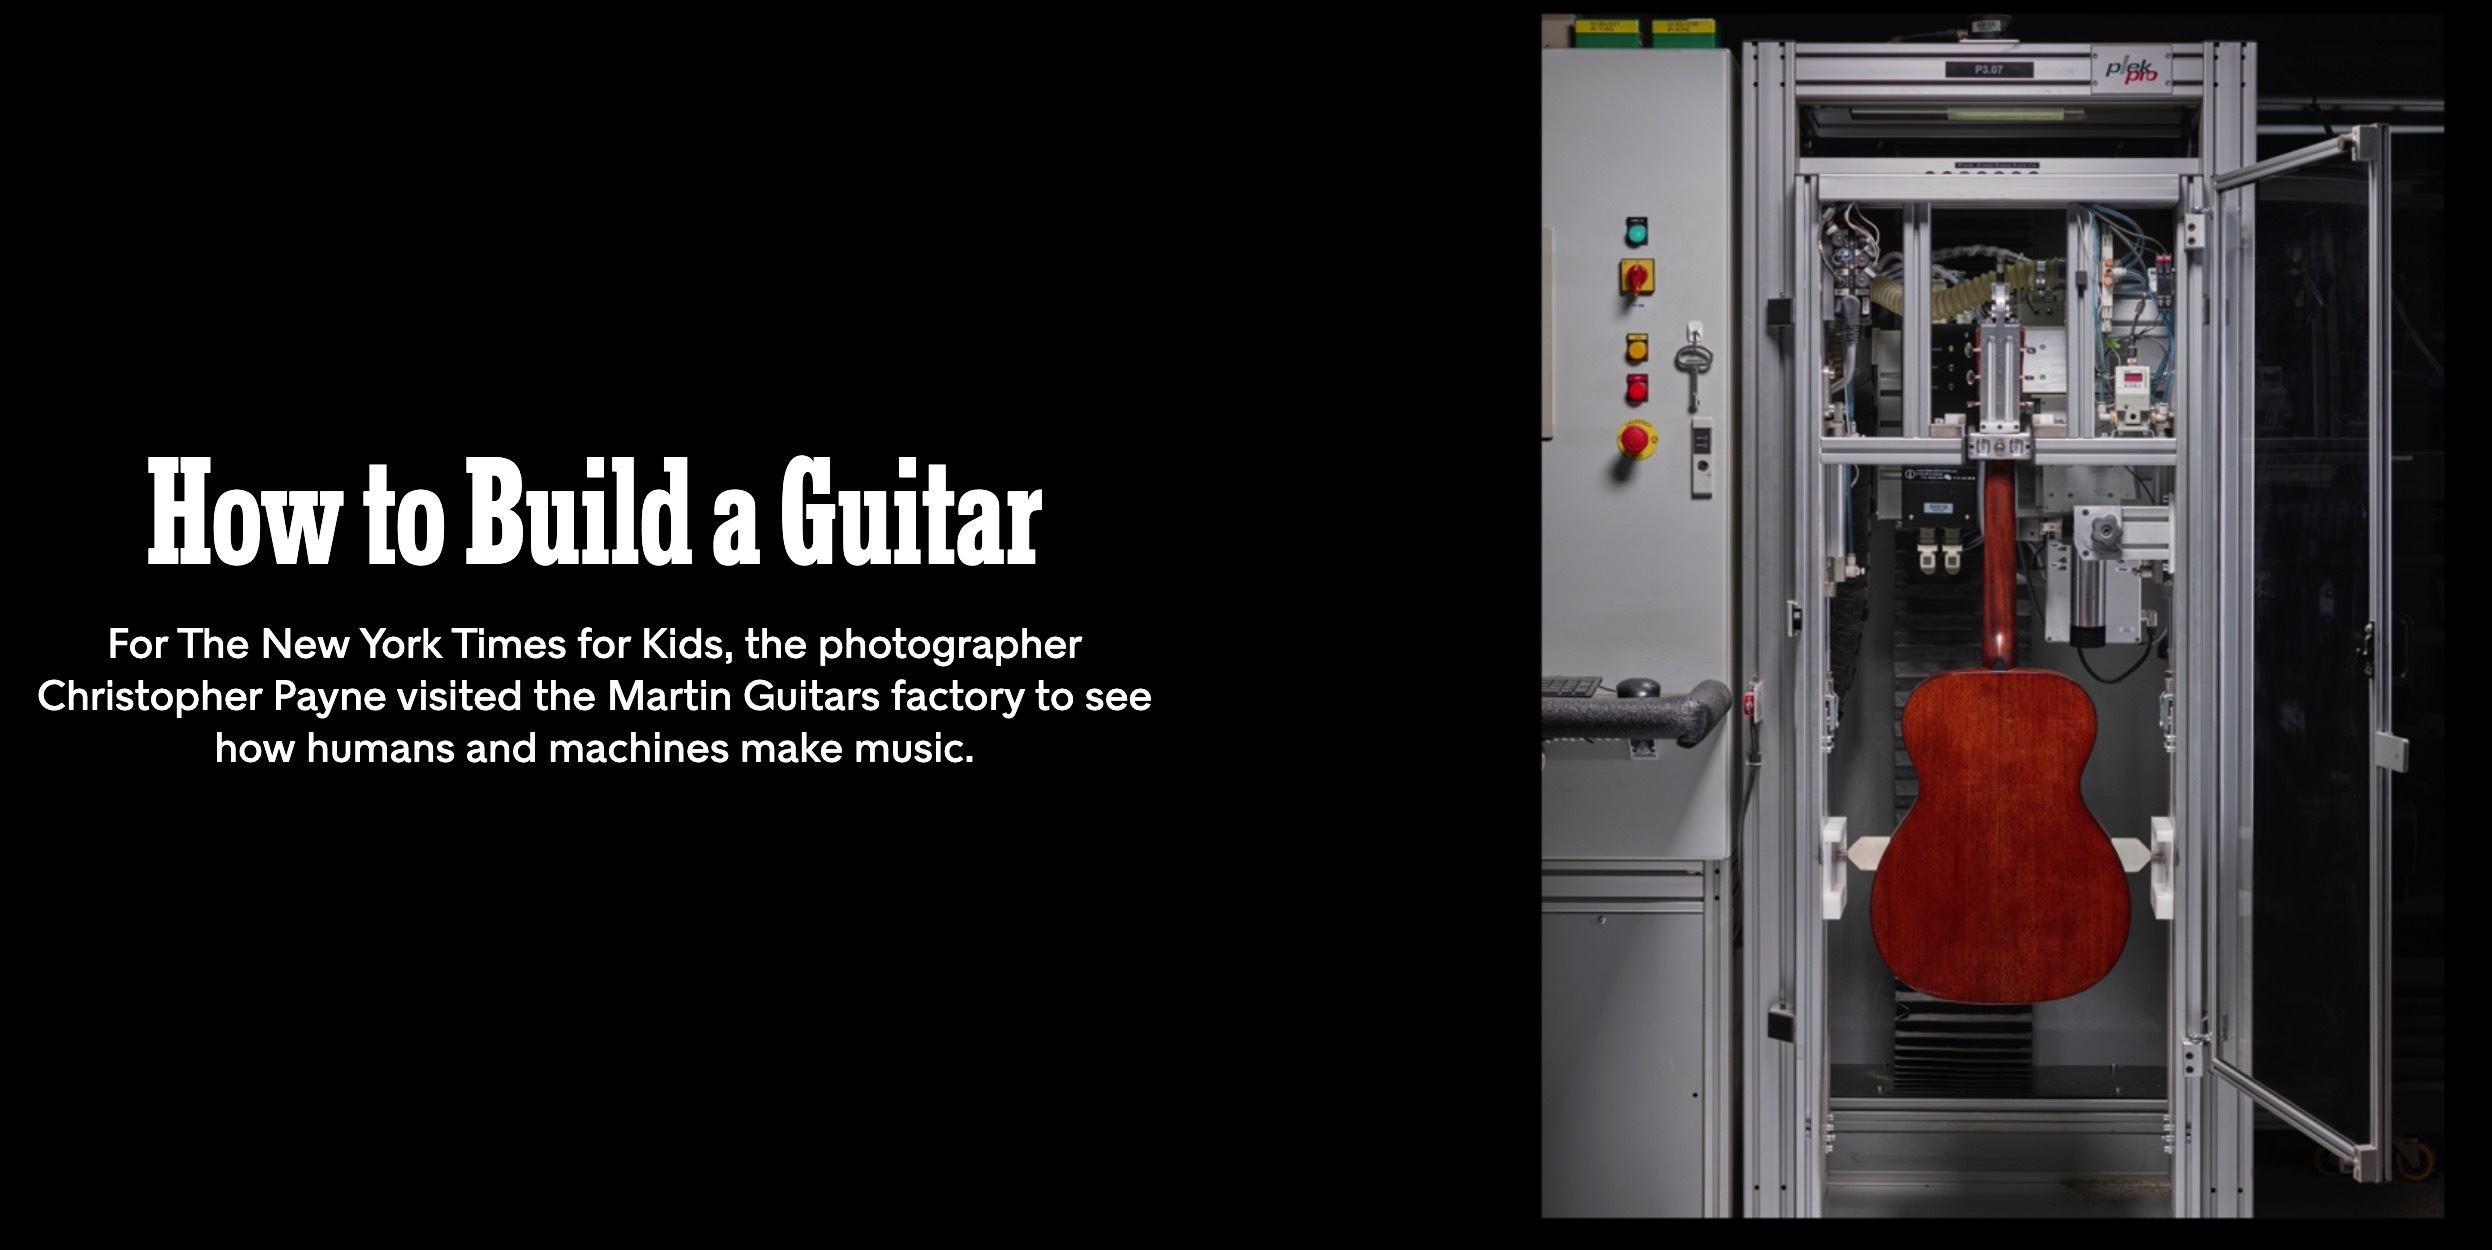 NY Times How to Build a Guitar